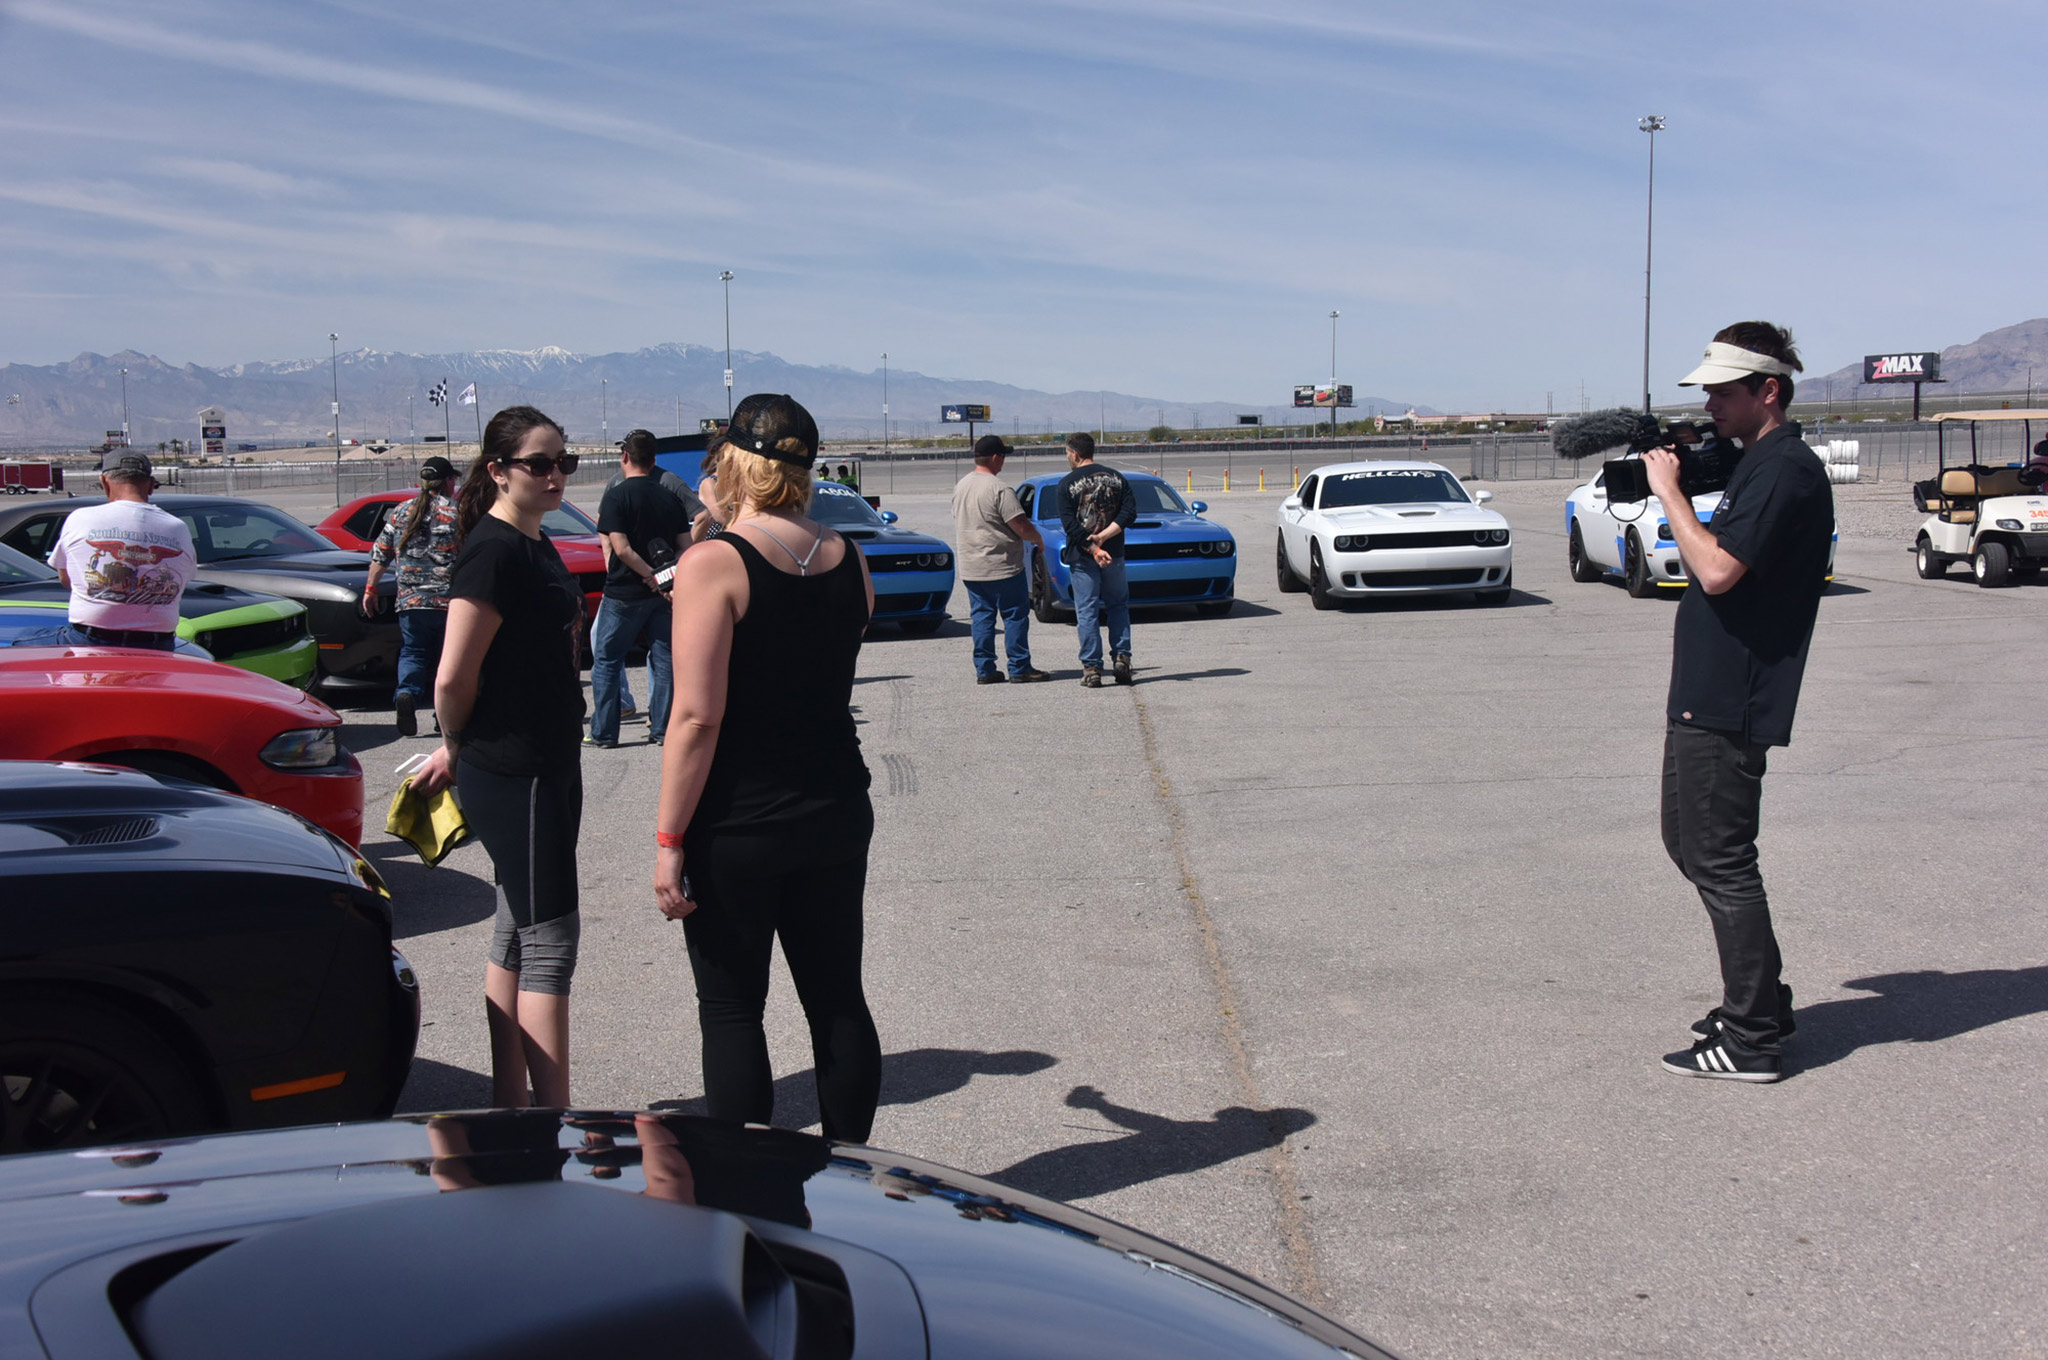 At the driver's meeting, Mopar Muscle videographer Kale Eickhof interviews Miss Mogane Caen, our sole female contestant, and owner of a brand new 2016 Hellcat Challenger.